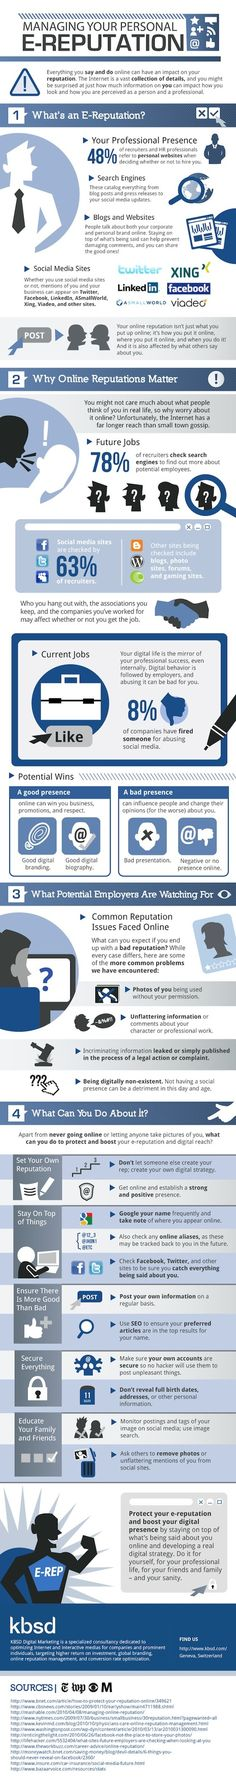 MANAGING YOUR PERSONAL E-REPUTATION [INFOGRAPHIC]